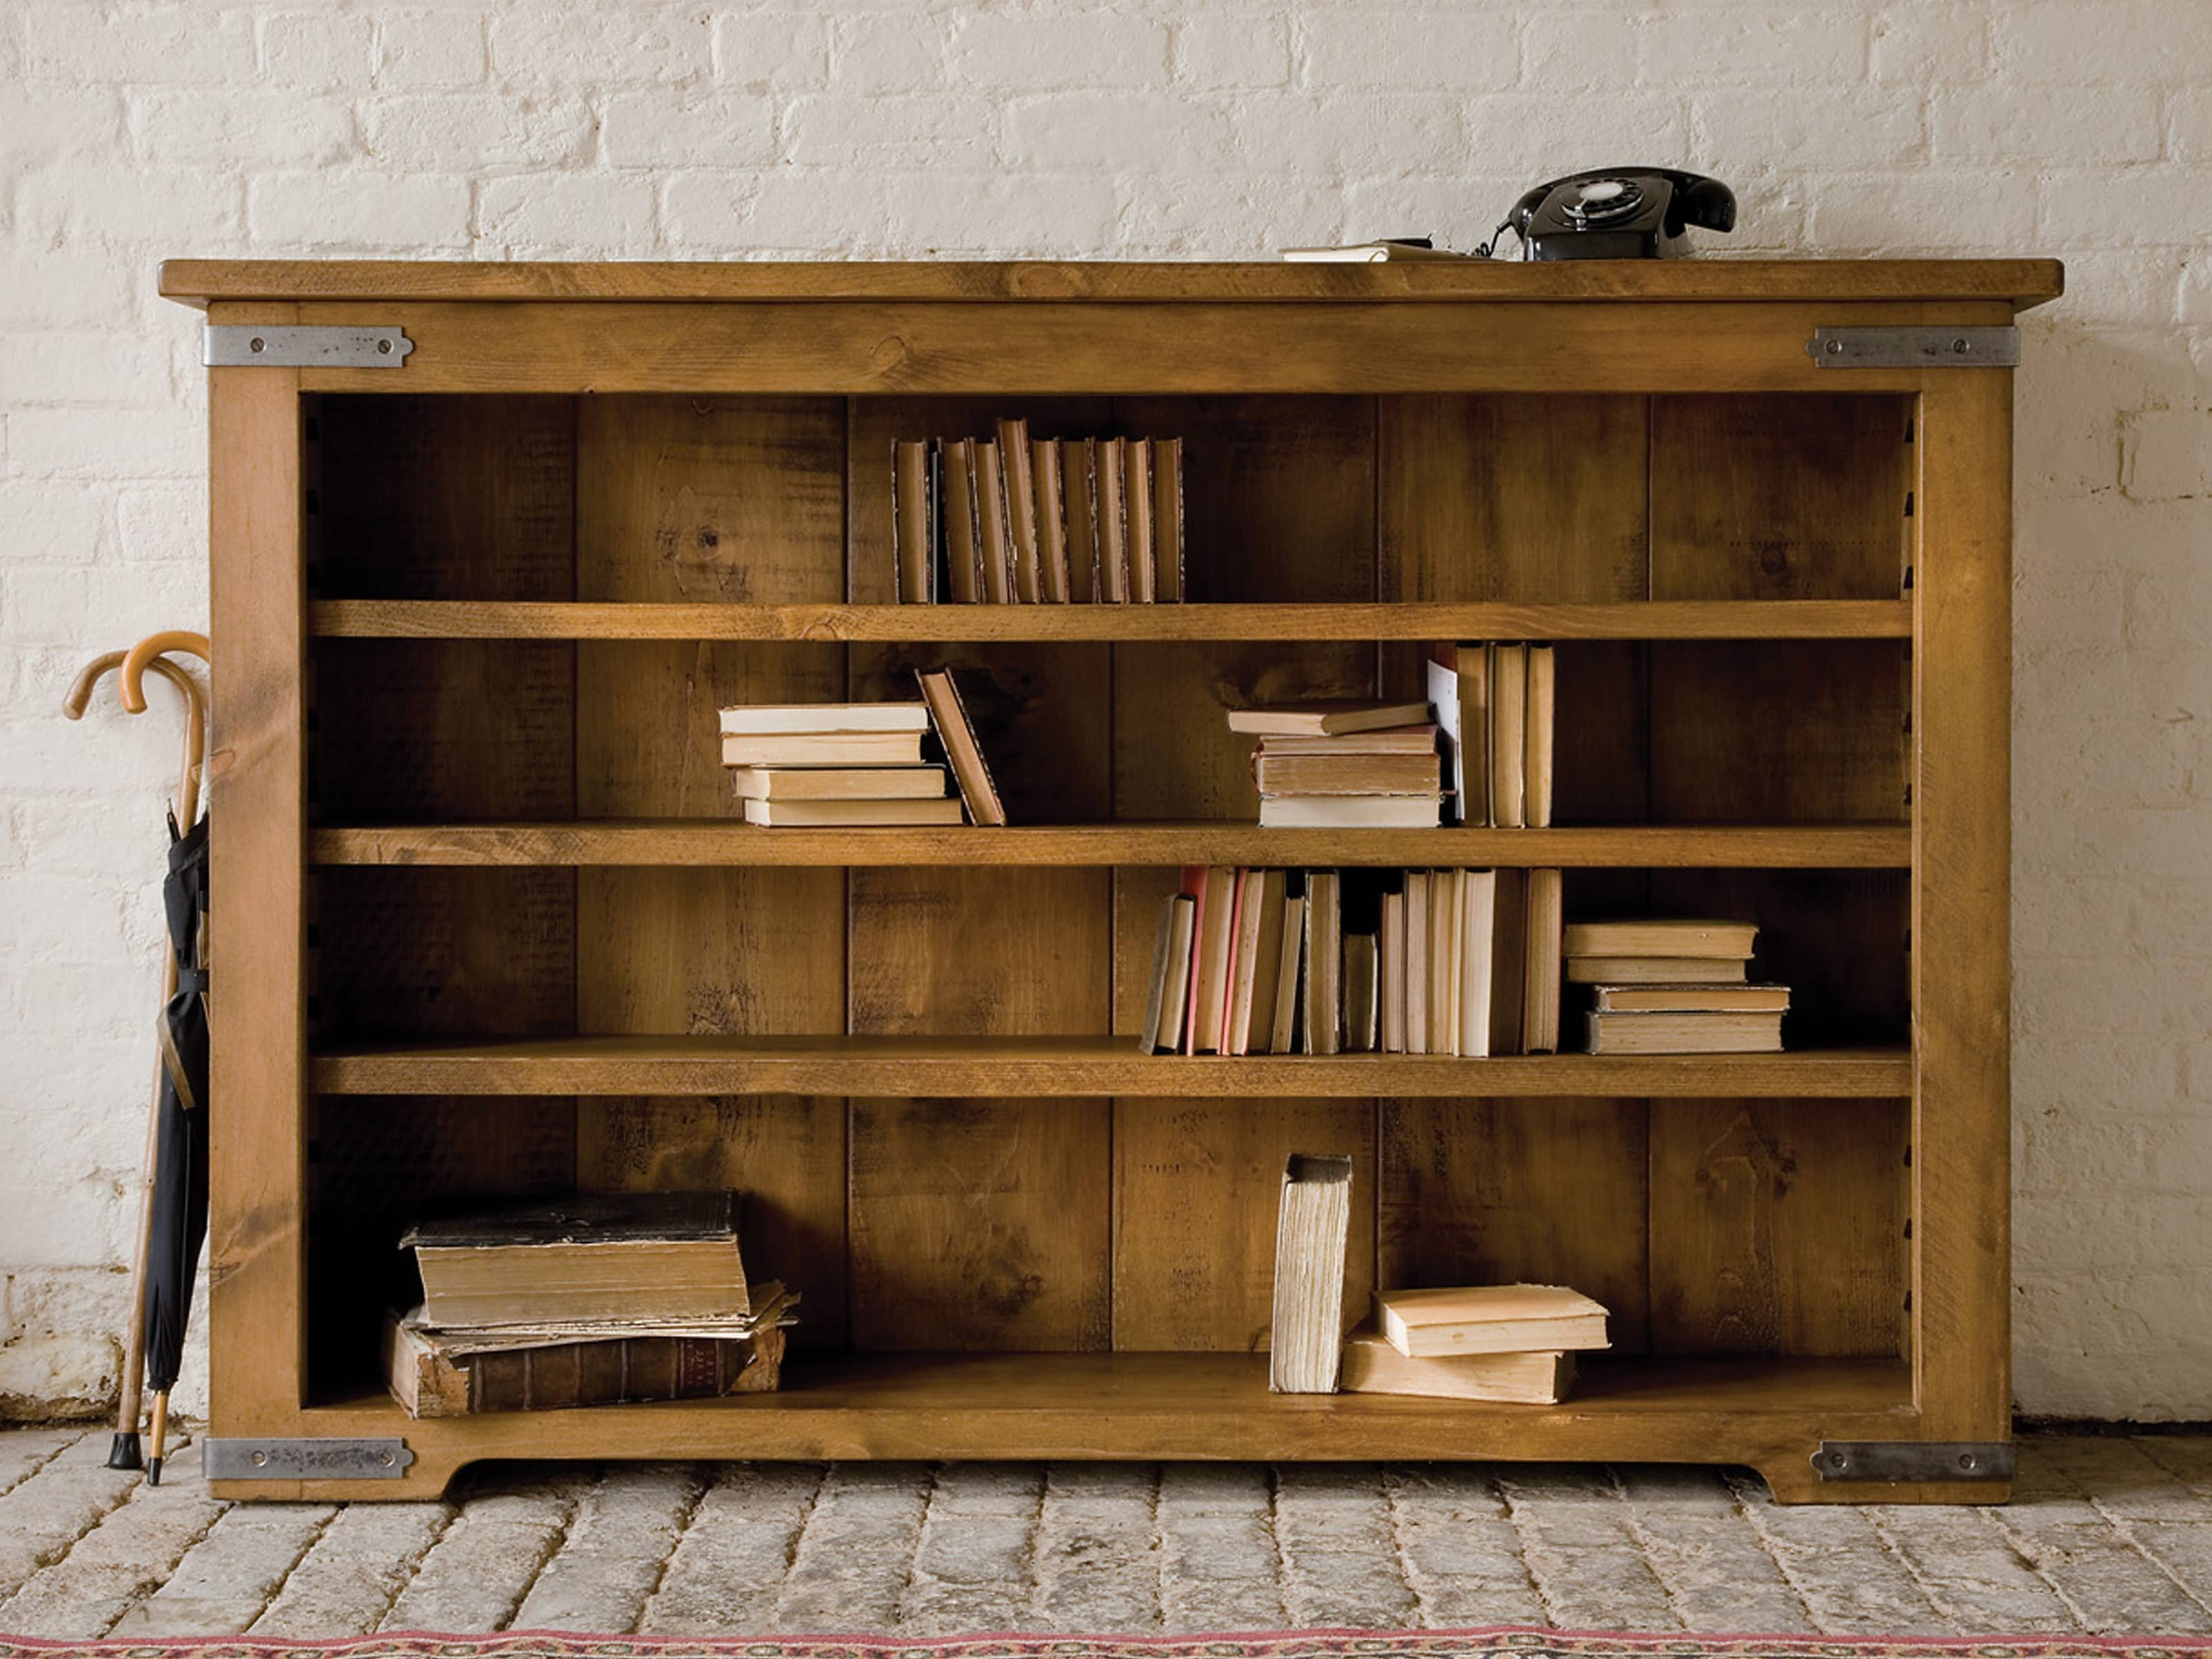 Wooden Bookcases Pertaining To Newest Bookcases Ideas: Best Choice Bookcases Wood Ever Mission Style (View 4 of 15)